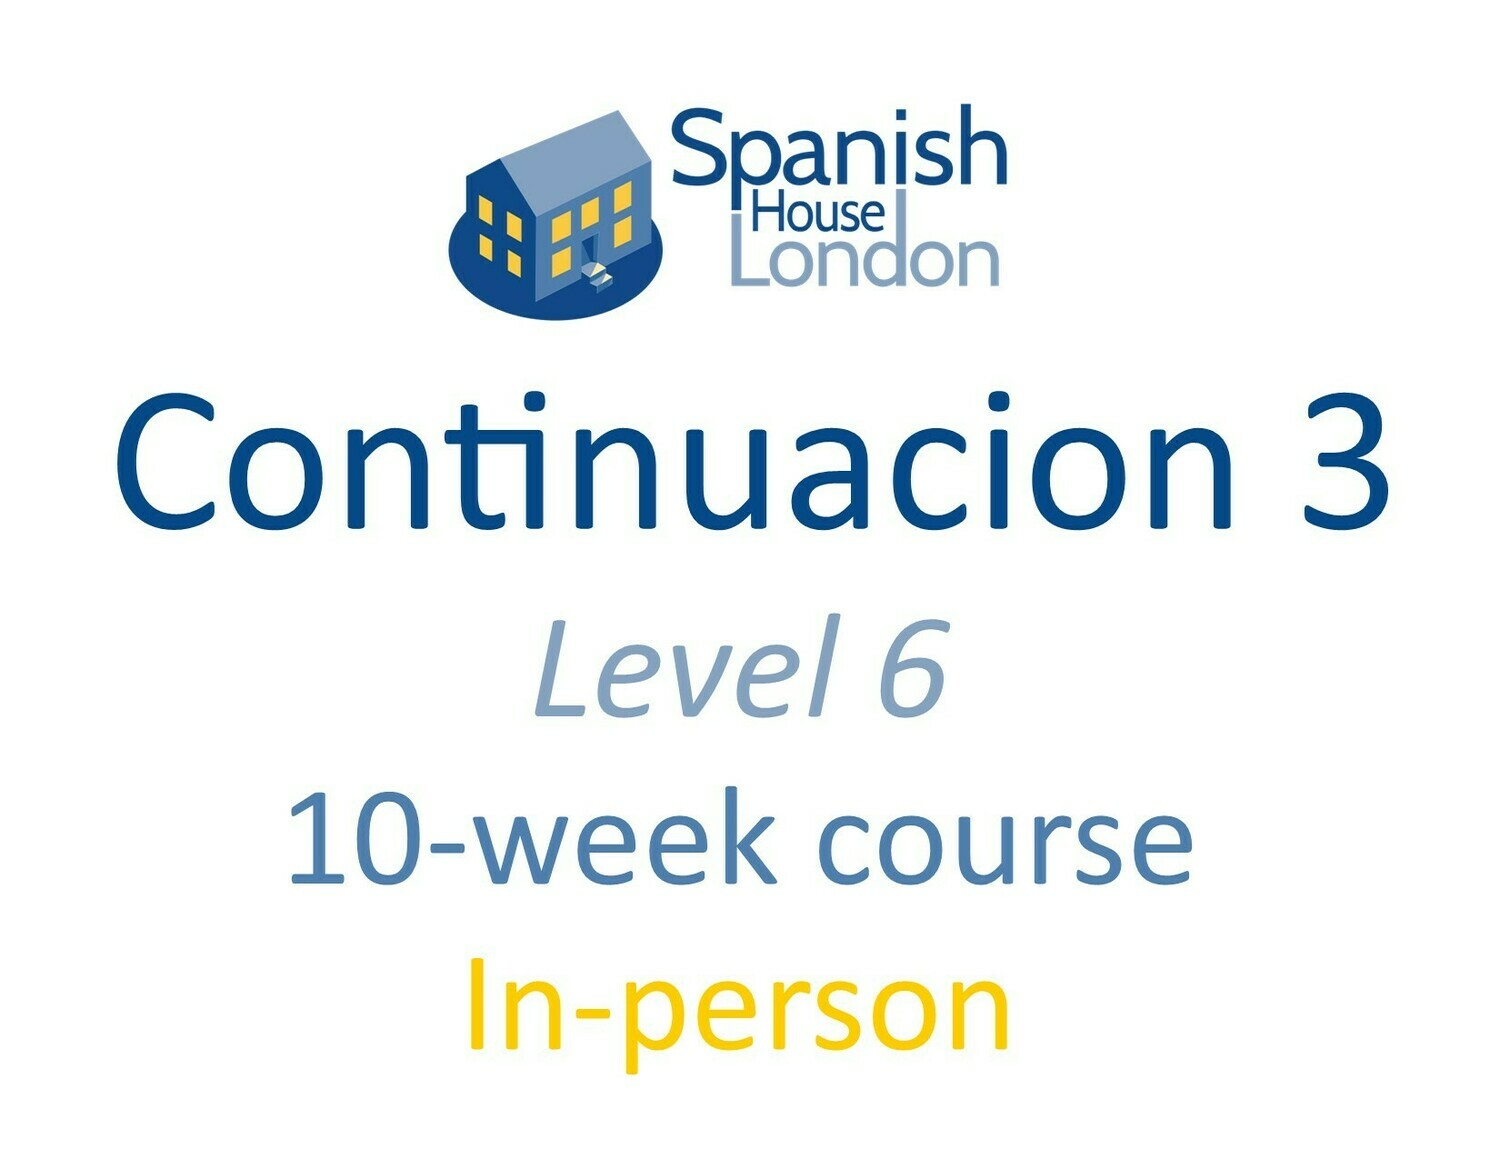 Continuacion 3 Course starting on 30th September at 7.30pm in Euston / King's Cross